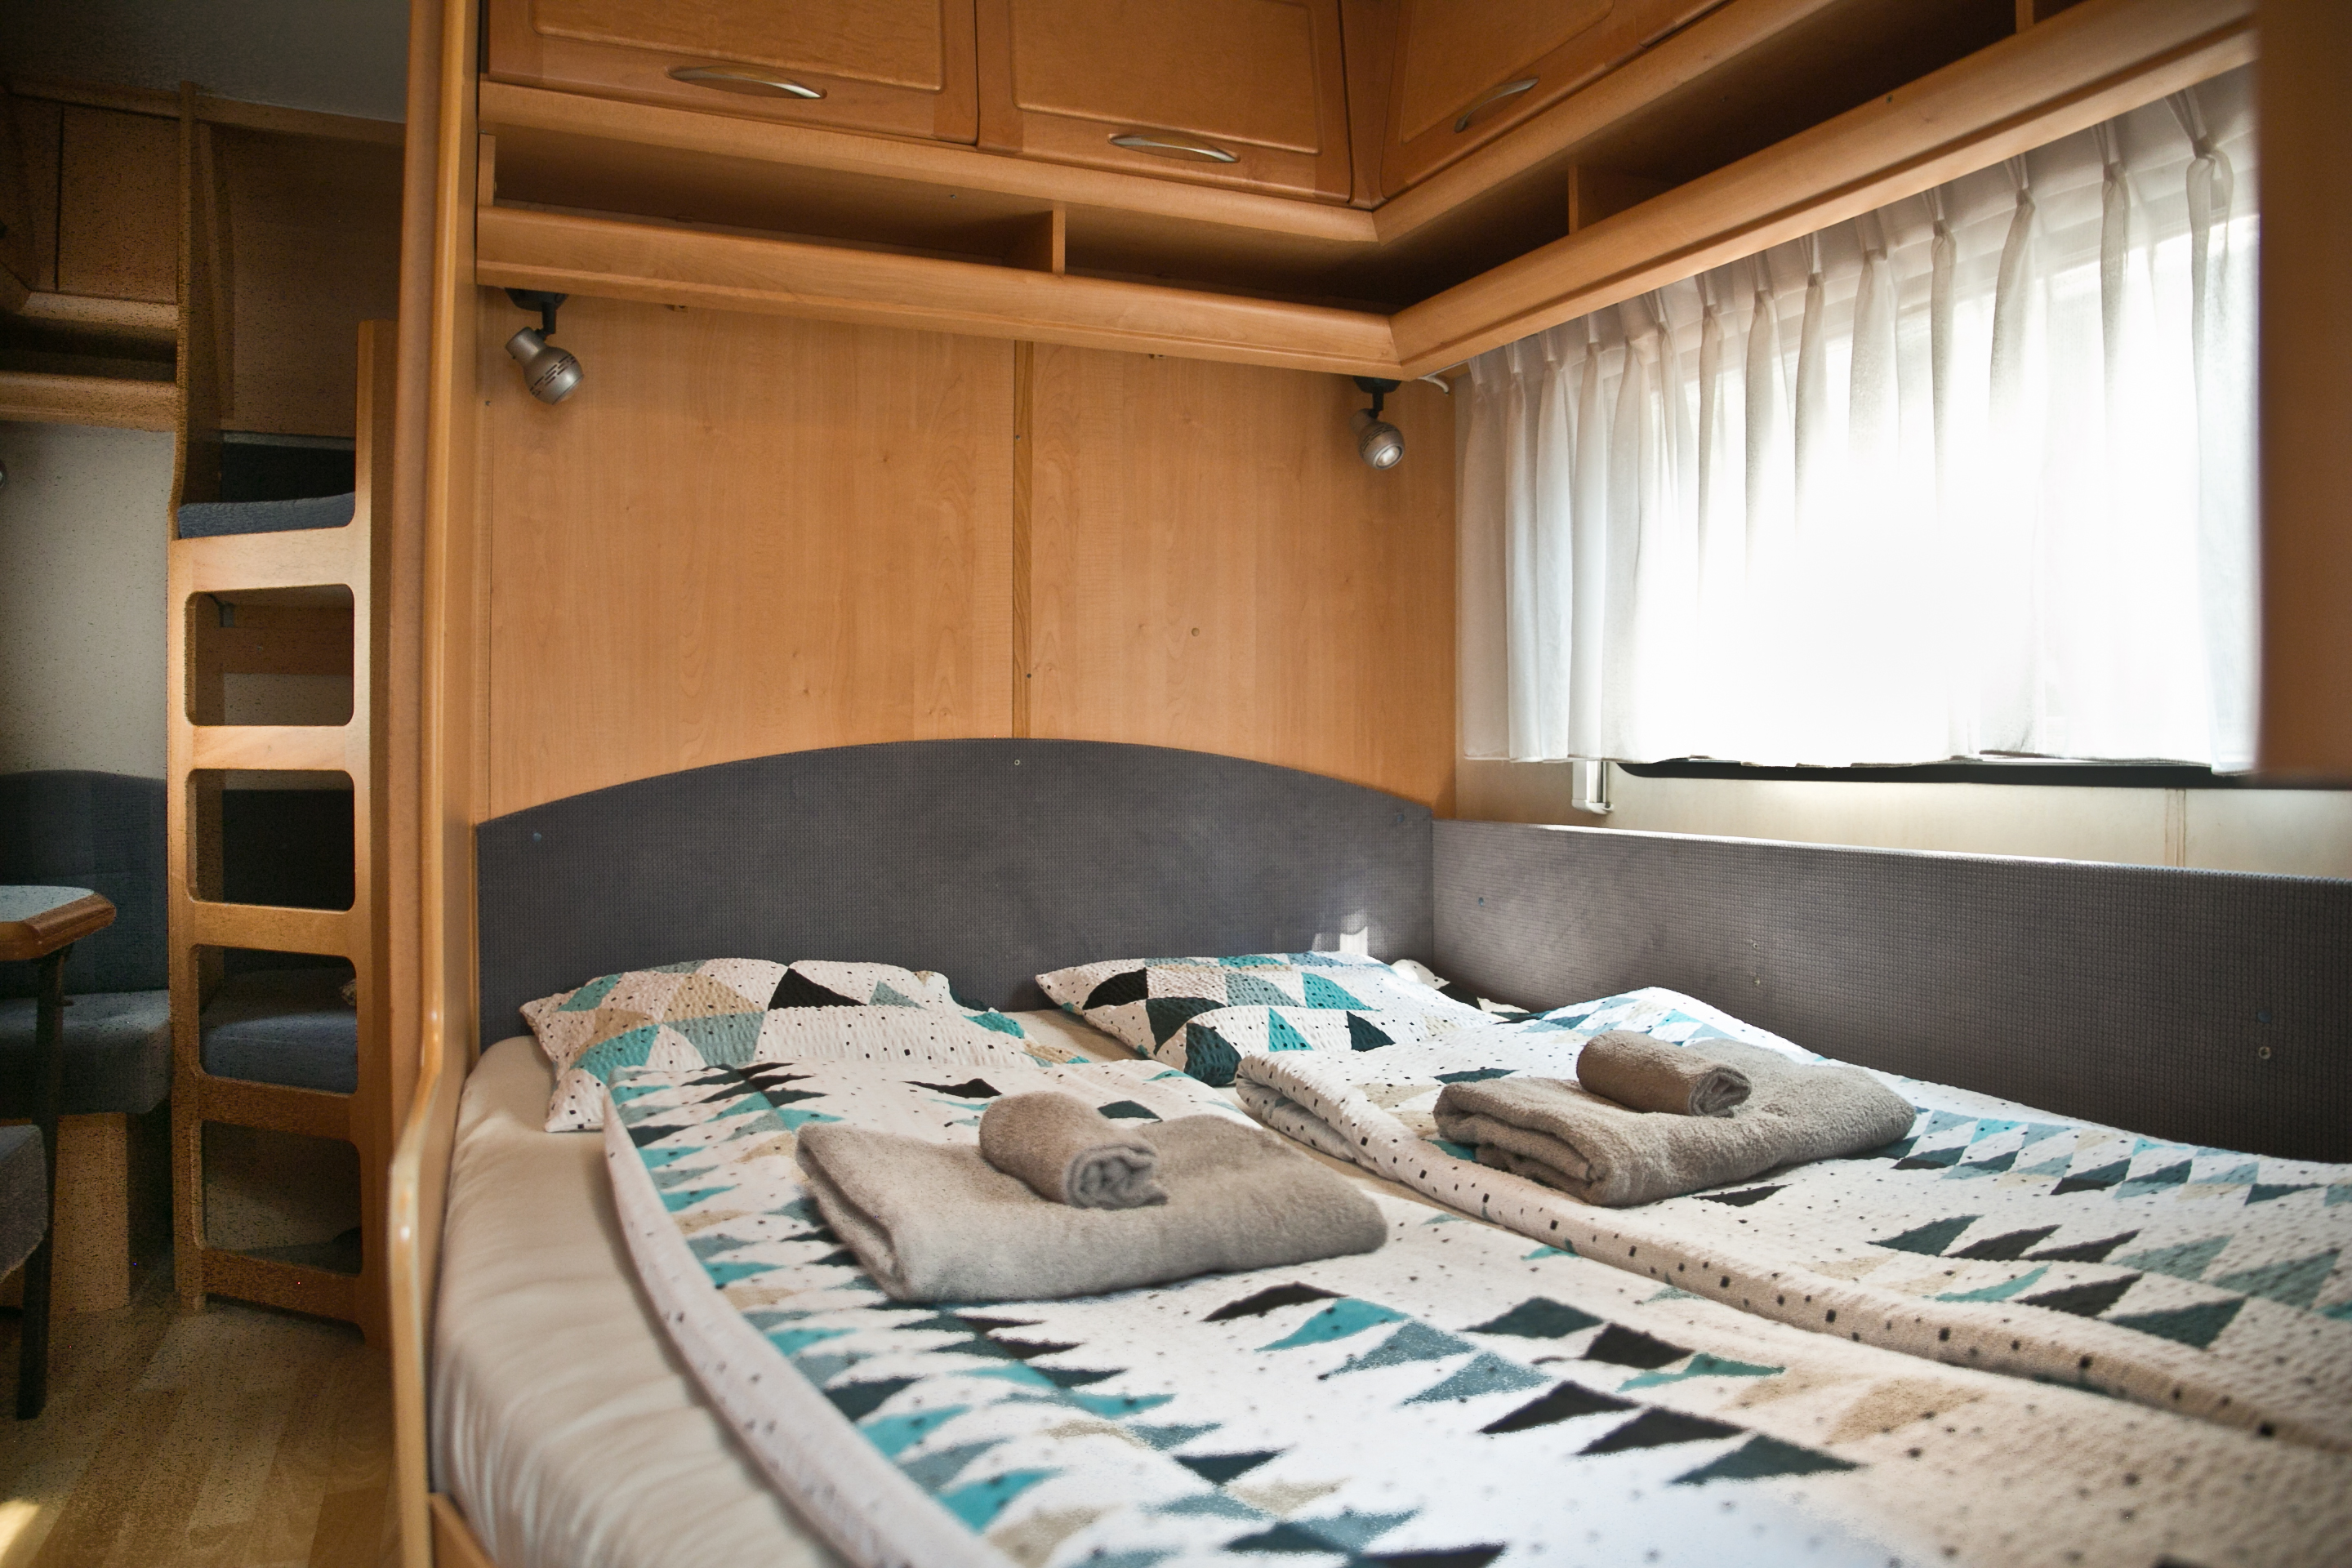 bedroom in caravans in Baško Polje